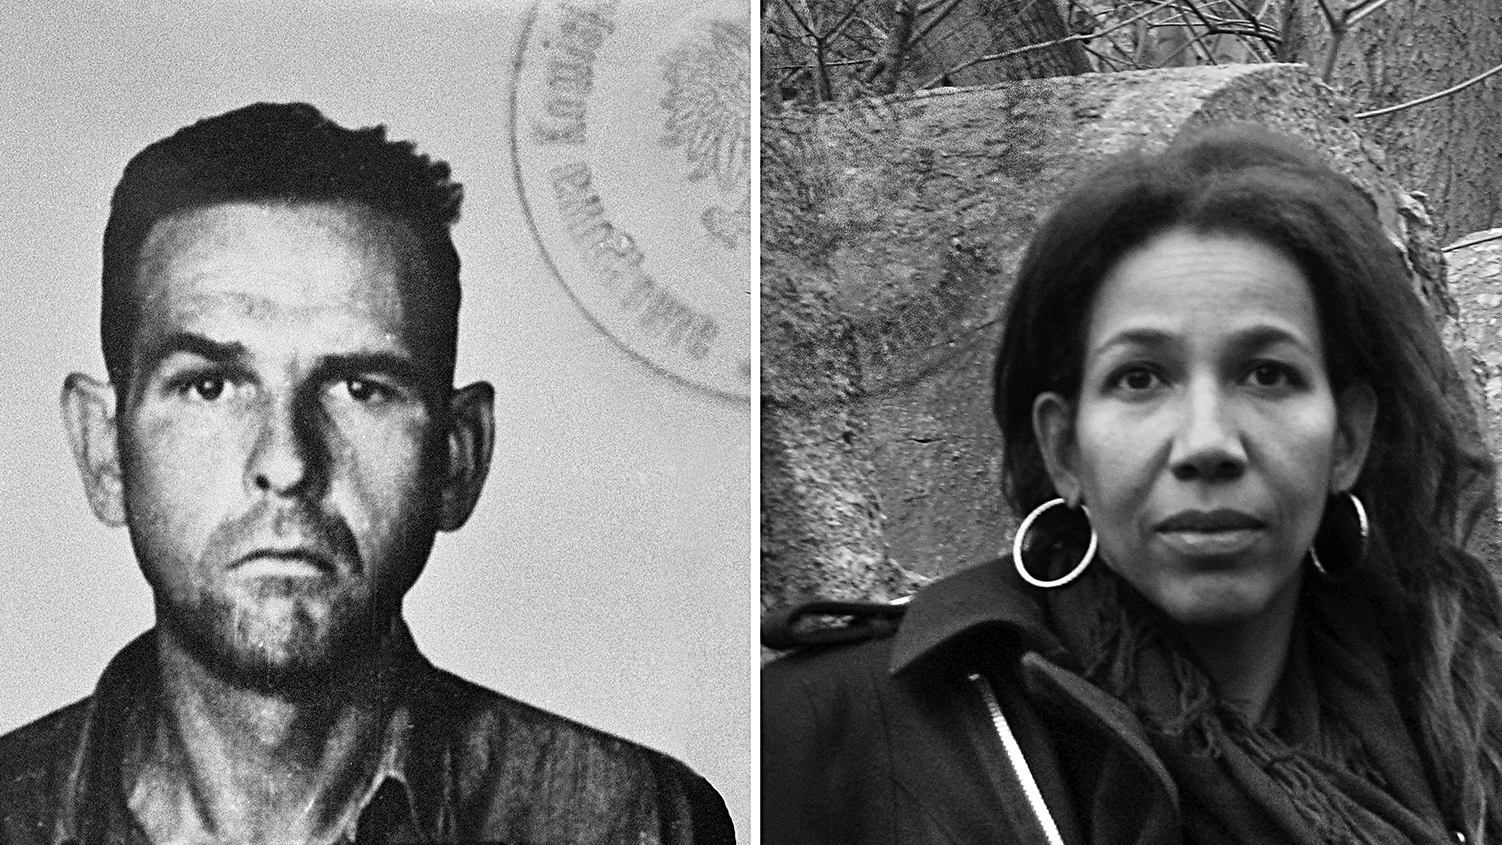 Side by side shot of Amon Goeth and his granddaughter Jennifer Teege.